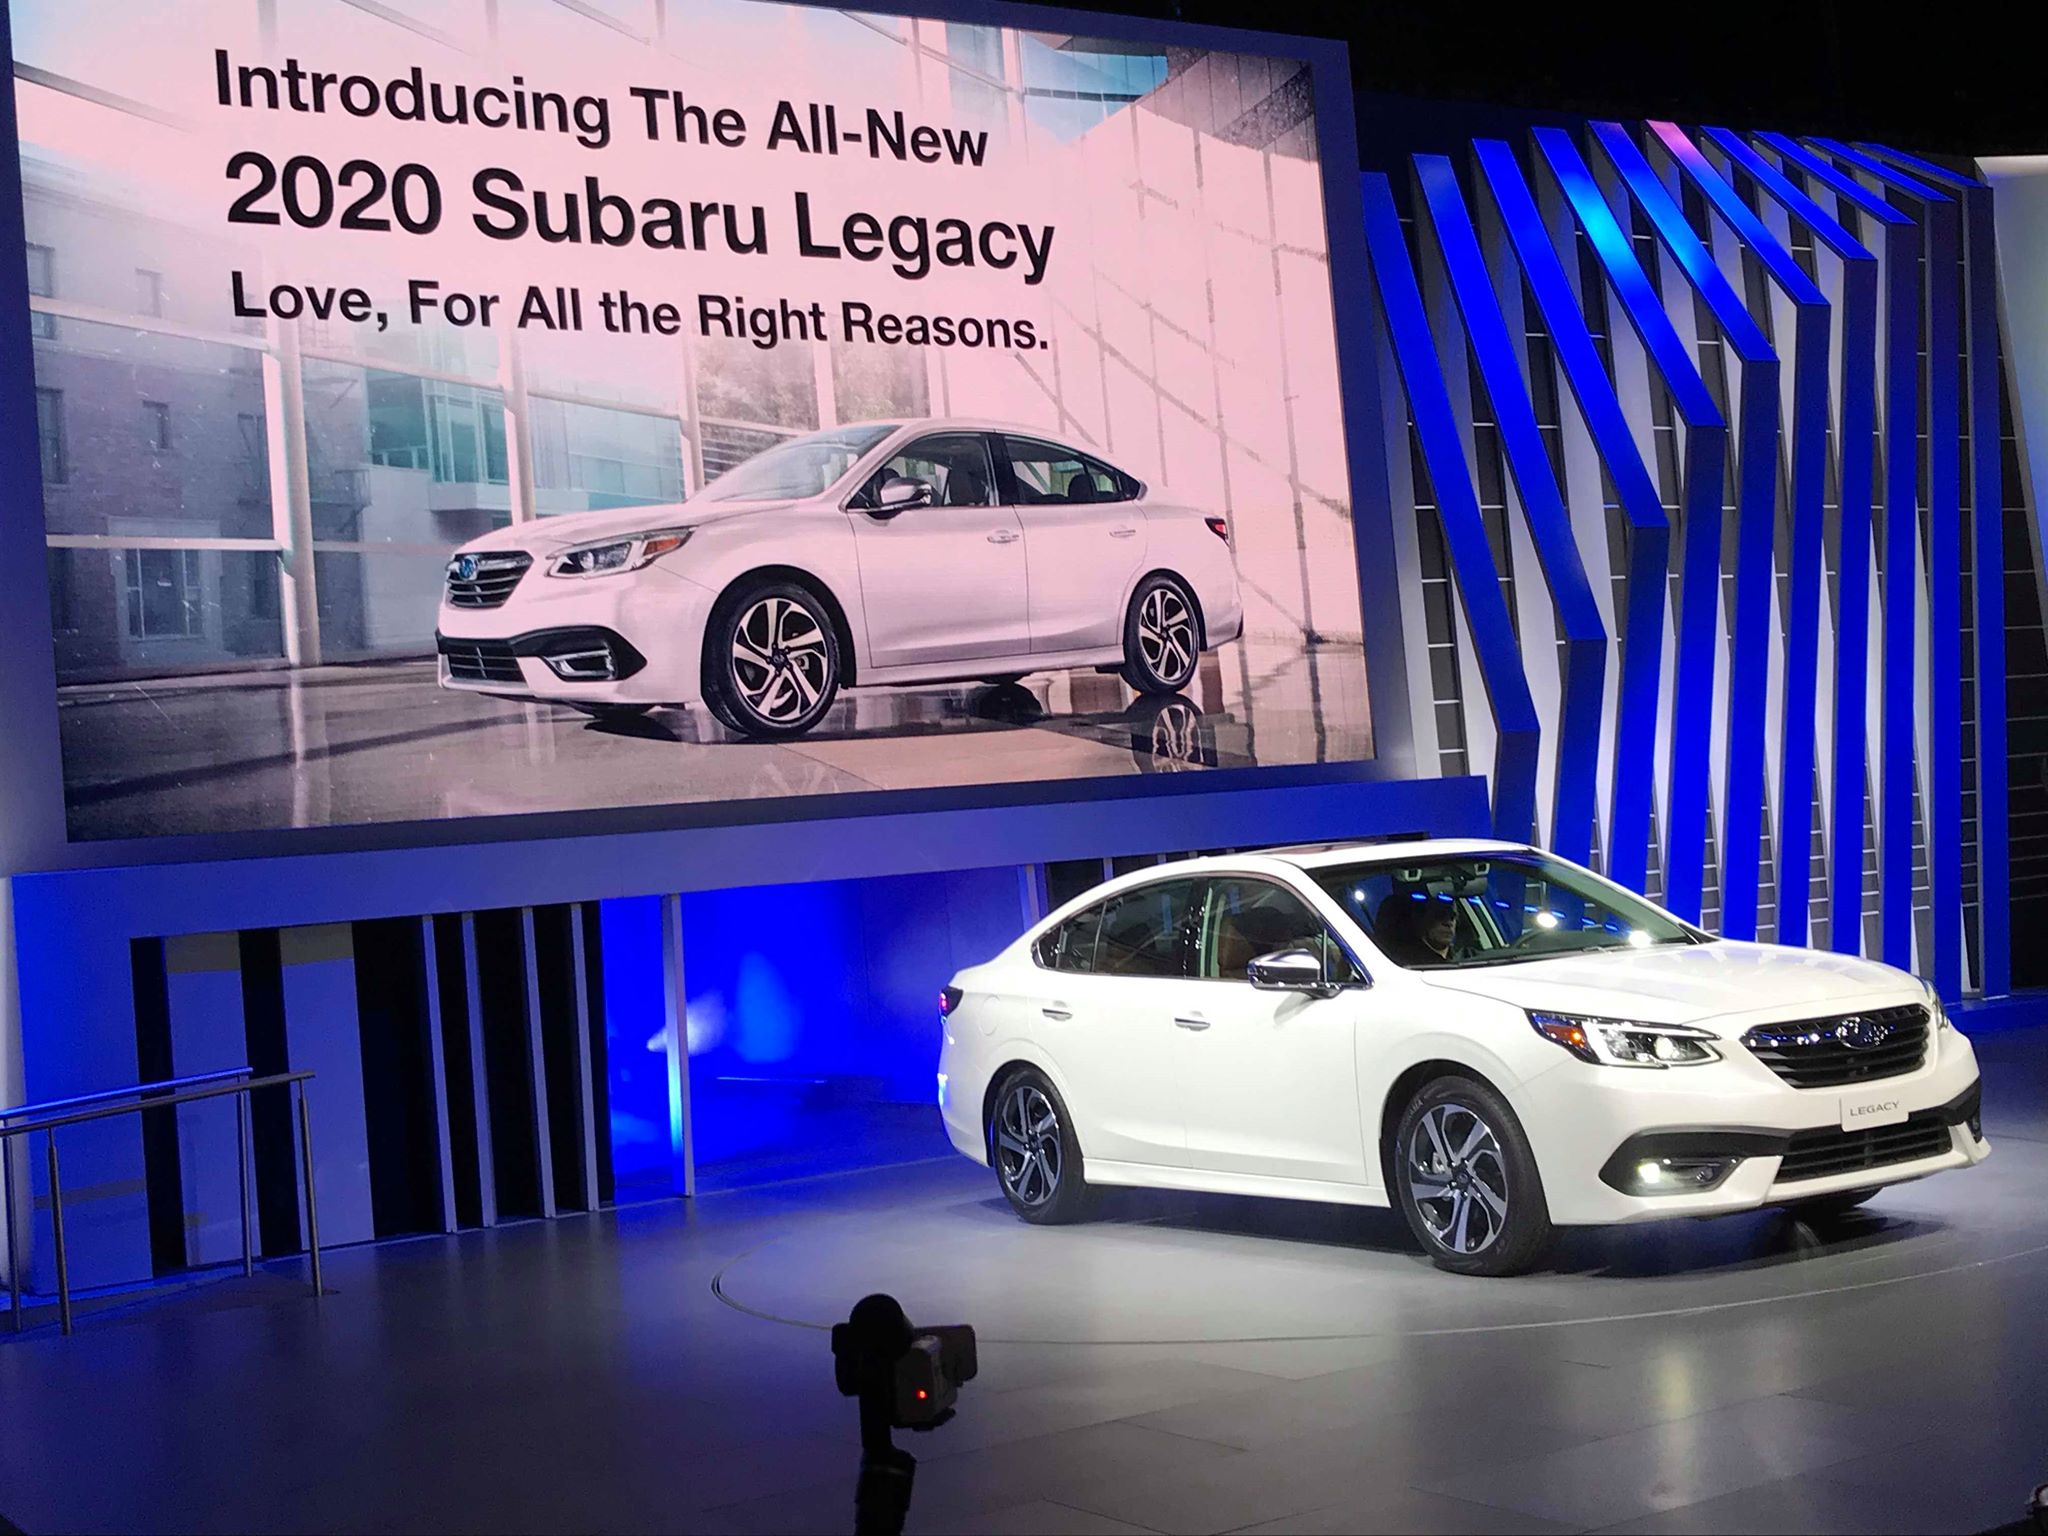 Subaru Boxer Engine >> Subaru Continues Its Legacy With the All-New 2020 Legacy - The News Wheel